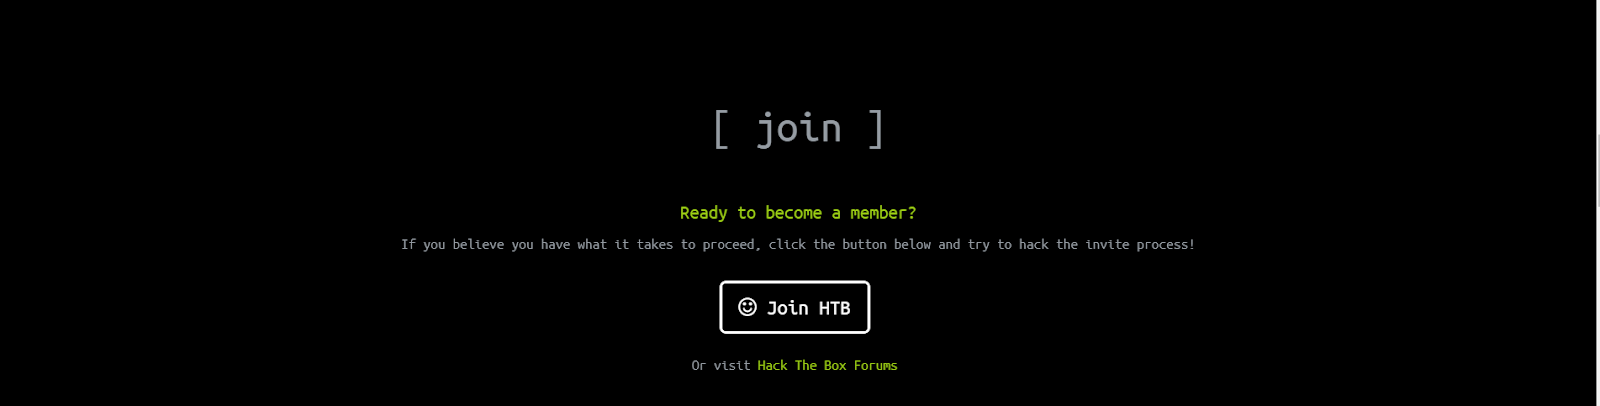 Hack The Box - How to hack in to the game